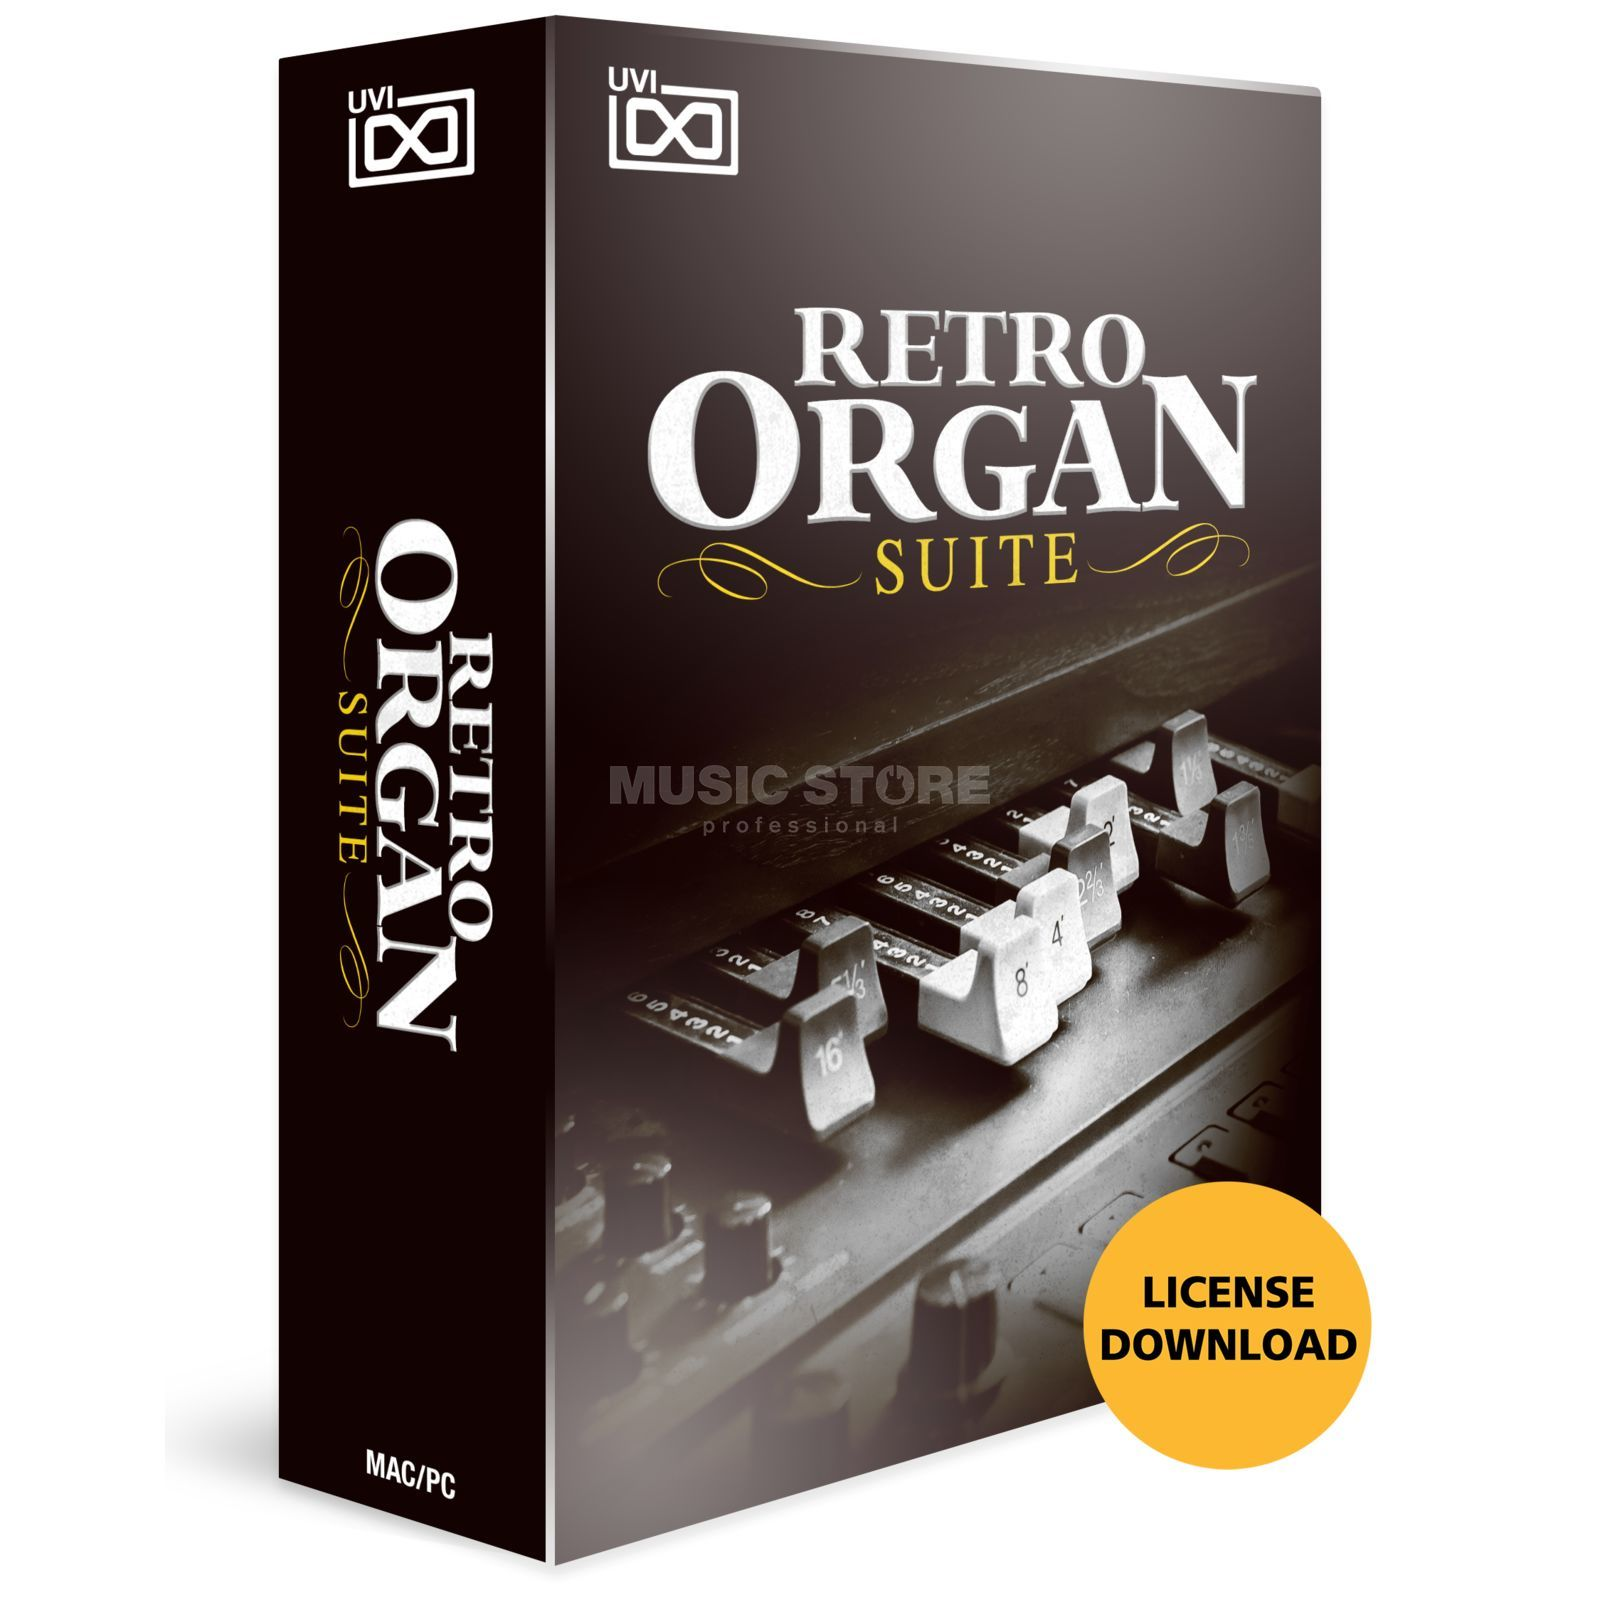 UVI Retro Organ Suite (Lizenz) Software Instrument Produktbild